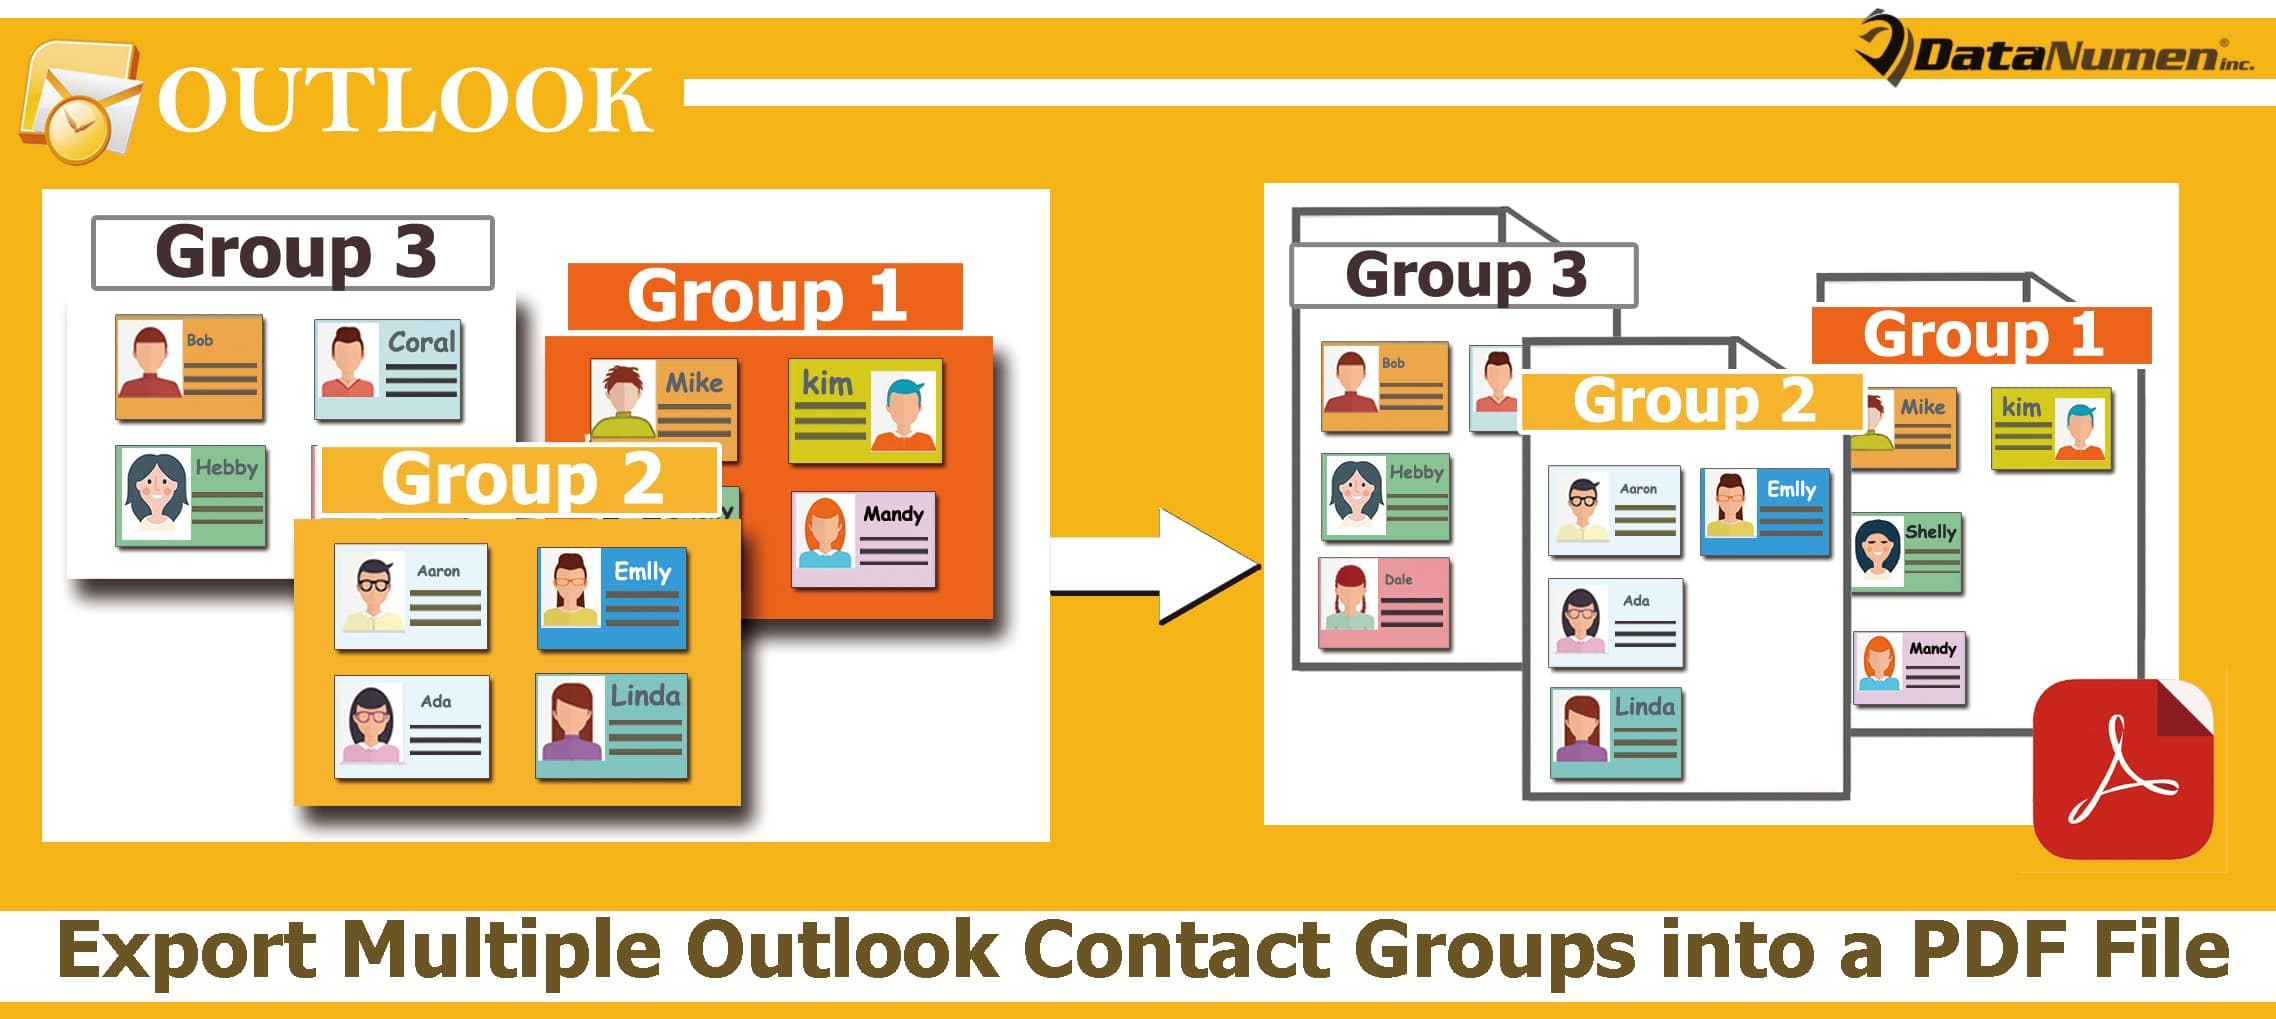 Quickly Export Multiple Outlook Contact Groups into a PDF File